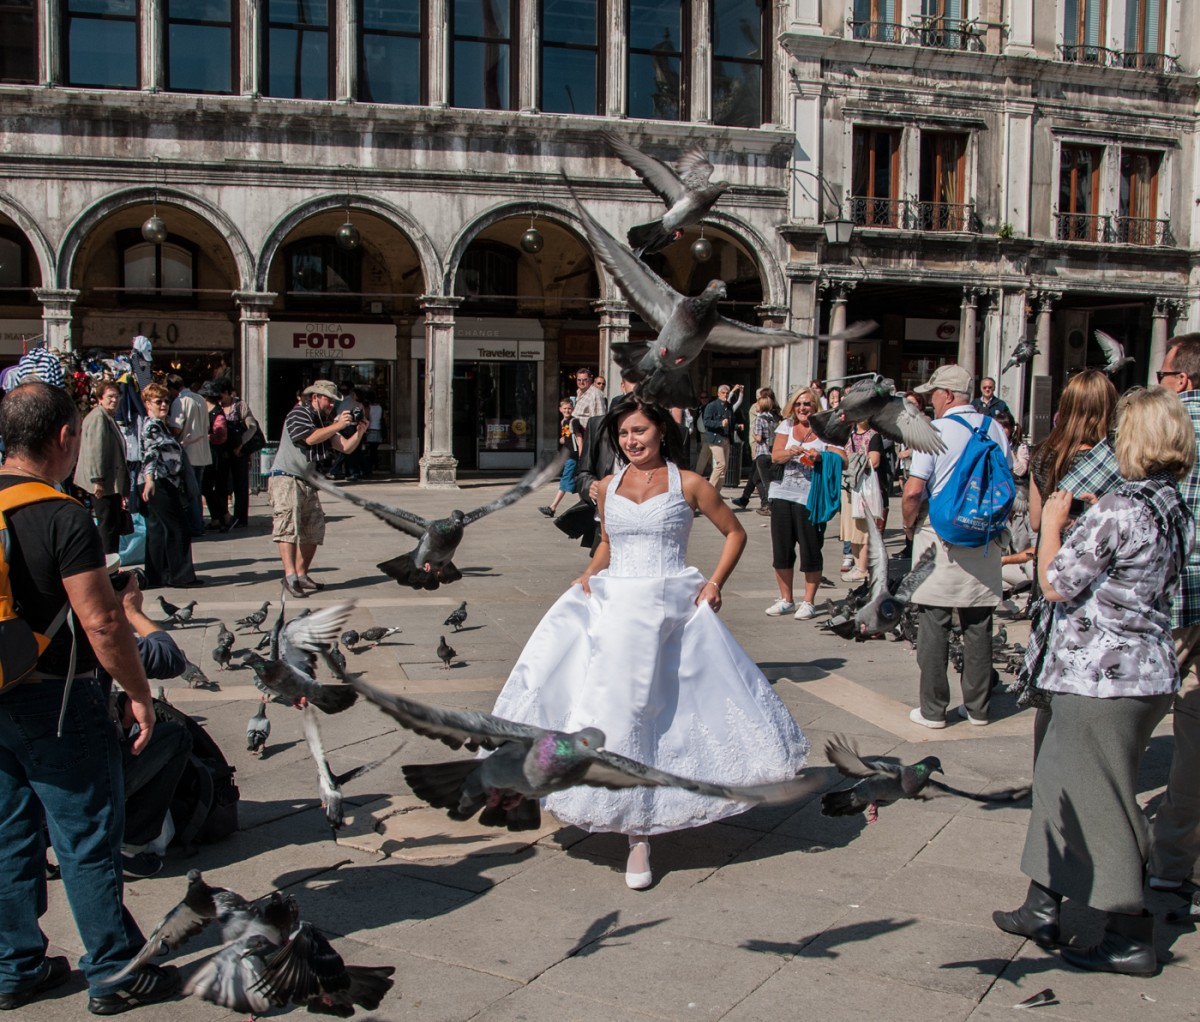 Came across this wedding in the Piazza.